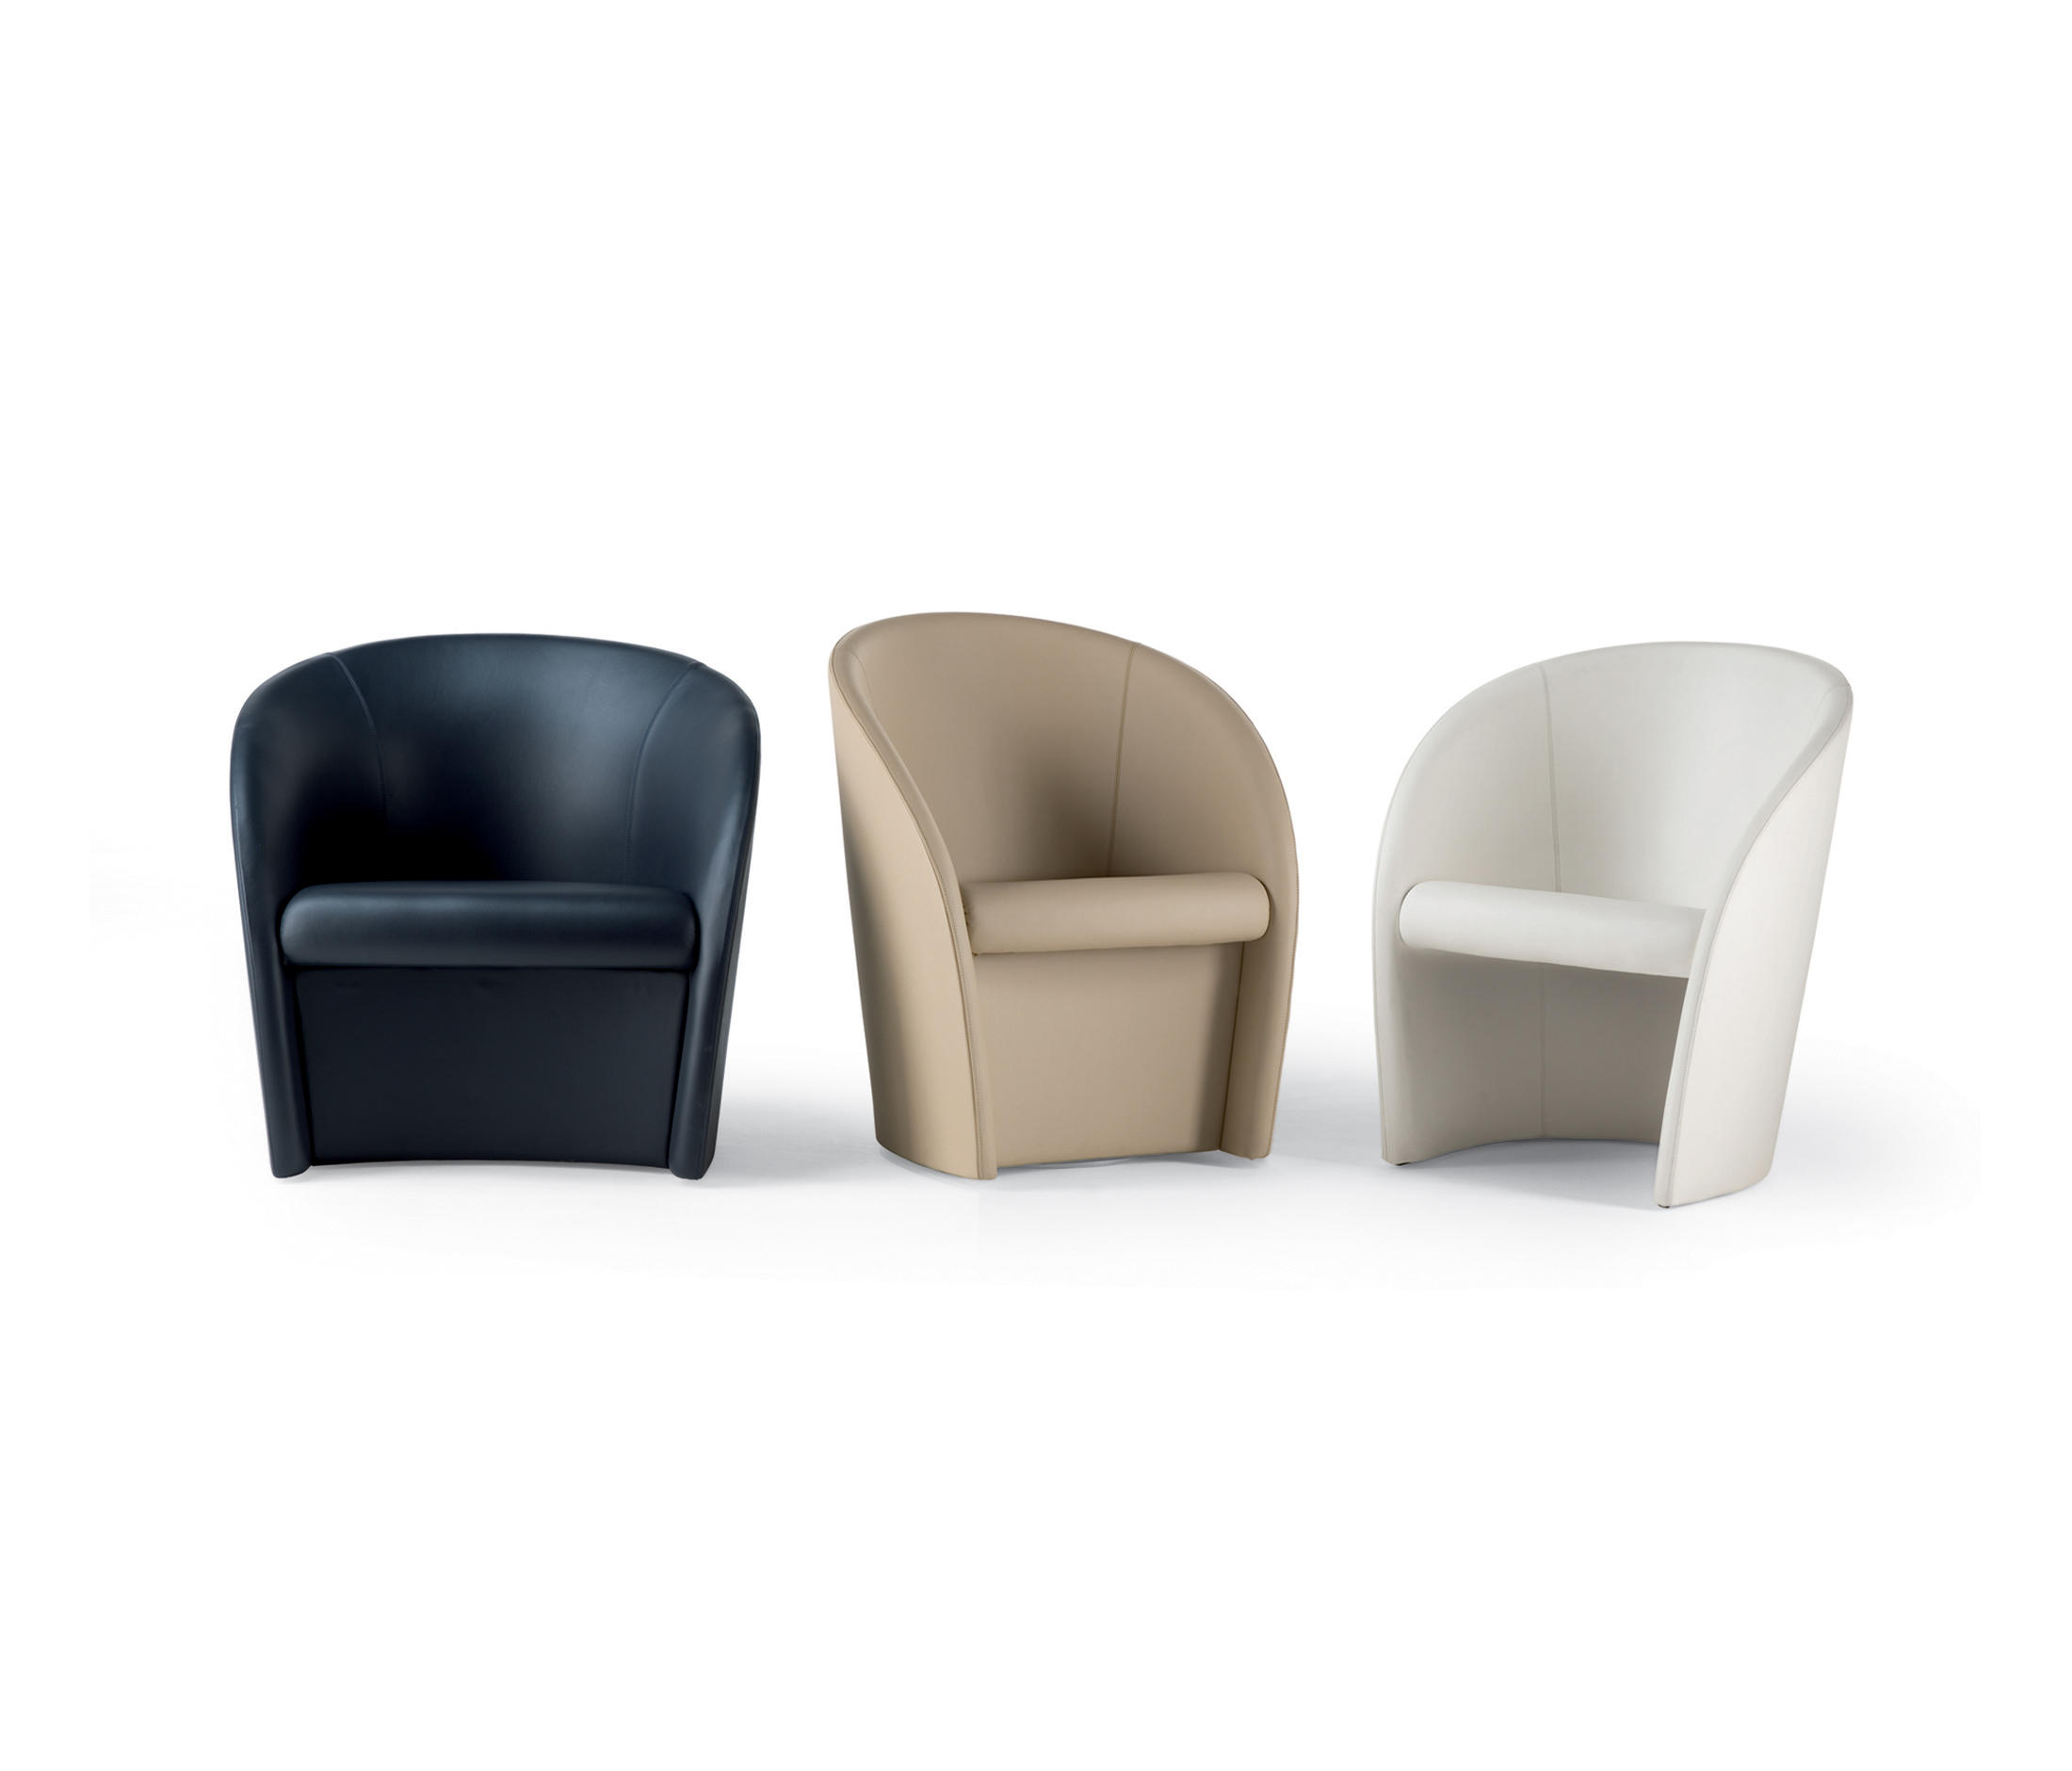 intervista lounge chairs from poltrona frau architonic. Black Bedroom Furniture Sets. Home Design Ideas